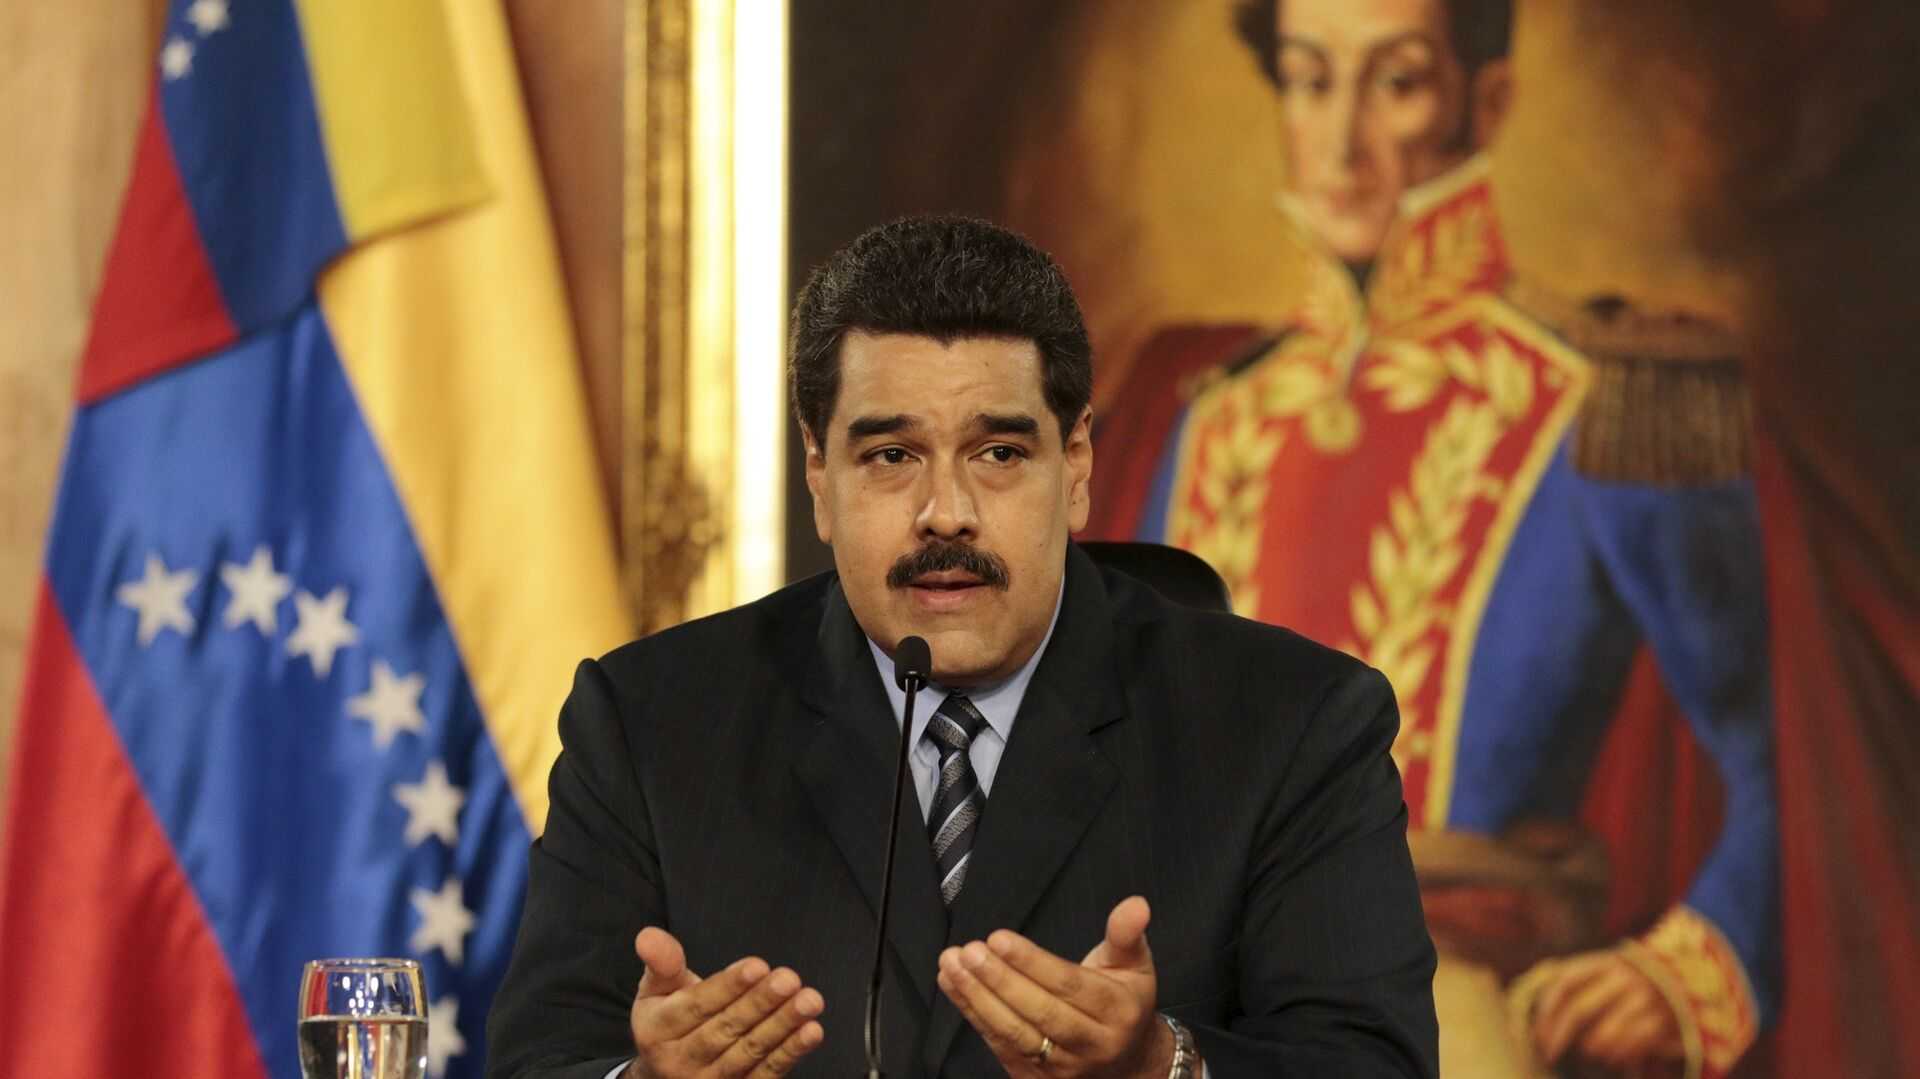 Venezuela's President Nicolas Maduro speaks during a meeting at Miraflores Palace, in front of a painting of South American revolutionary hero Simon Bolivar, in Caracas, in this handout picture provided by Miraflores Palace on February 17, 2016.  - Sputnik Mundo, 1920, 21.05.2021